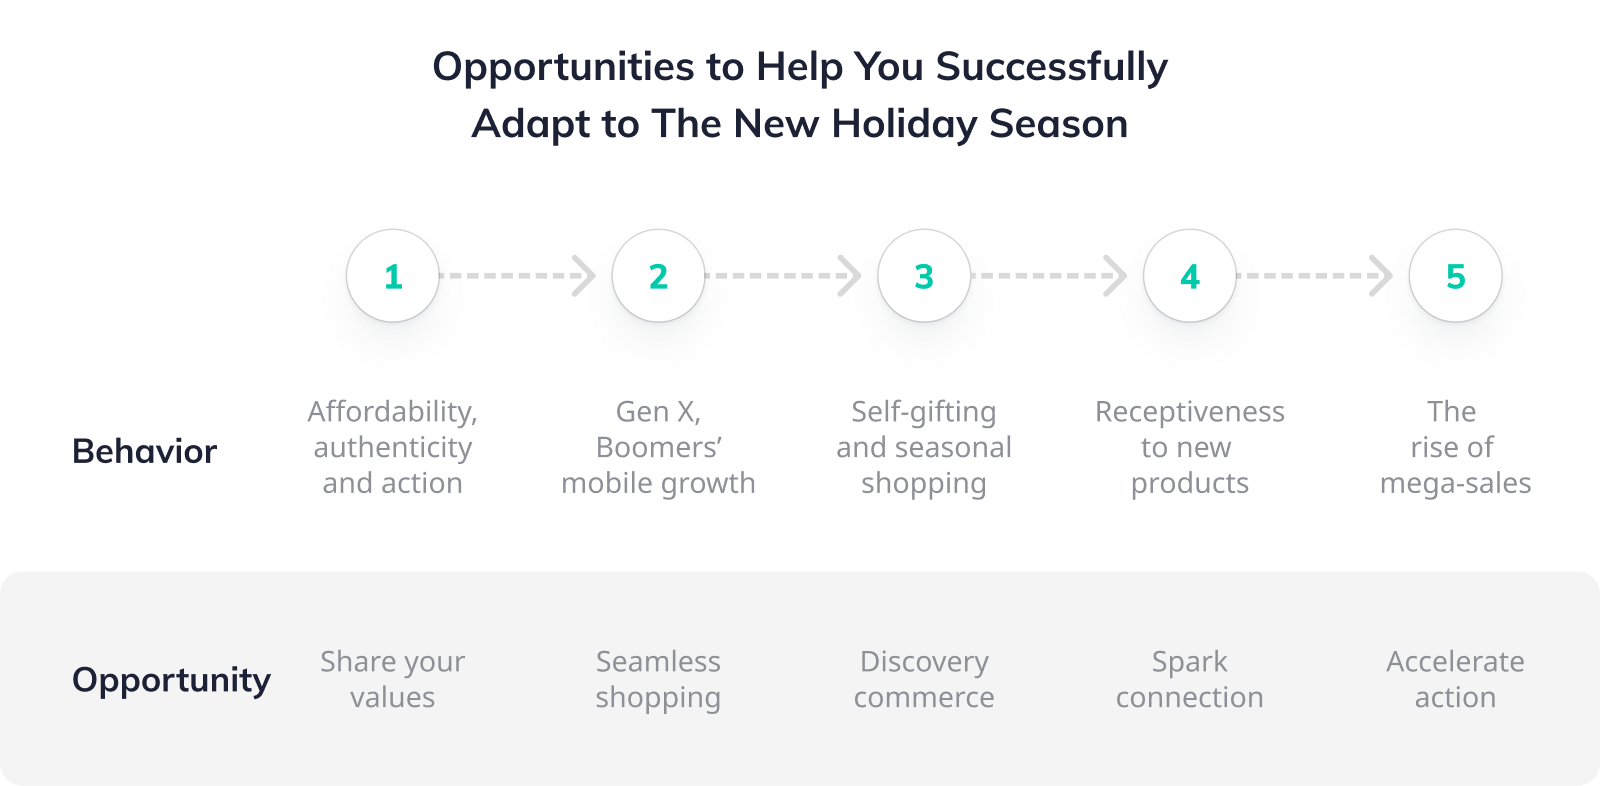 Opportunities to help you successfully adapt to the new holiday season